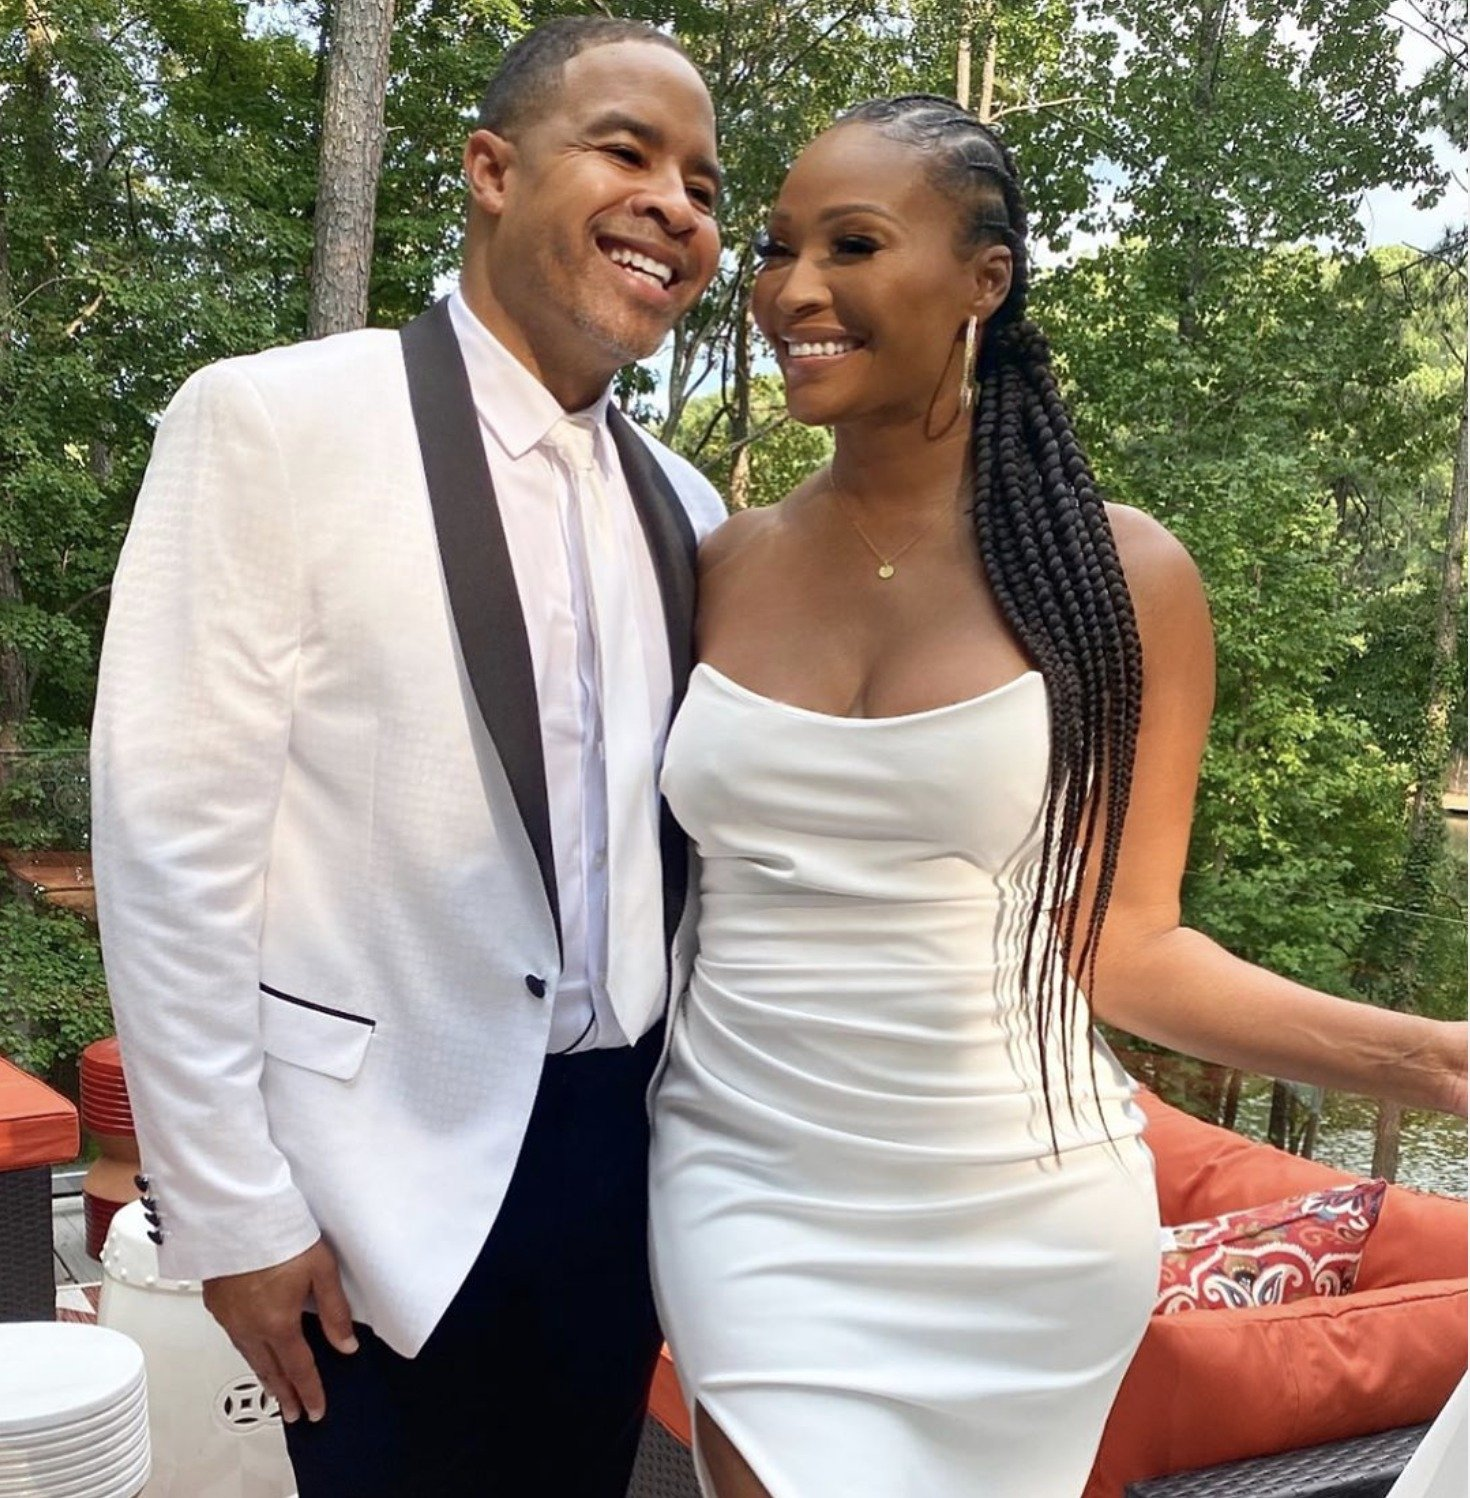 Cynthia Bailey And Mike Hill's Wedding Video In Which He's Crawling On The Dancefloor Has Fans Laughing Their Hearts Out